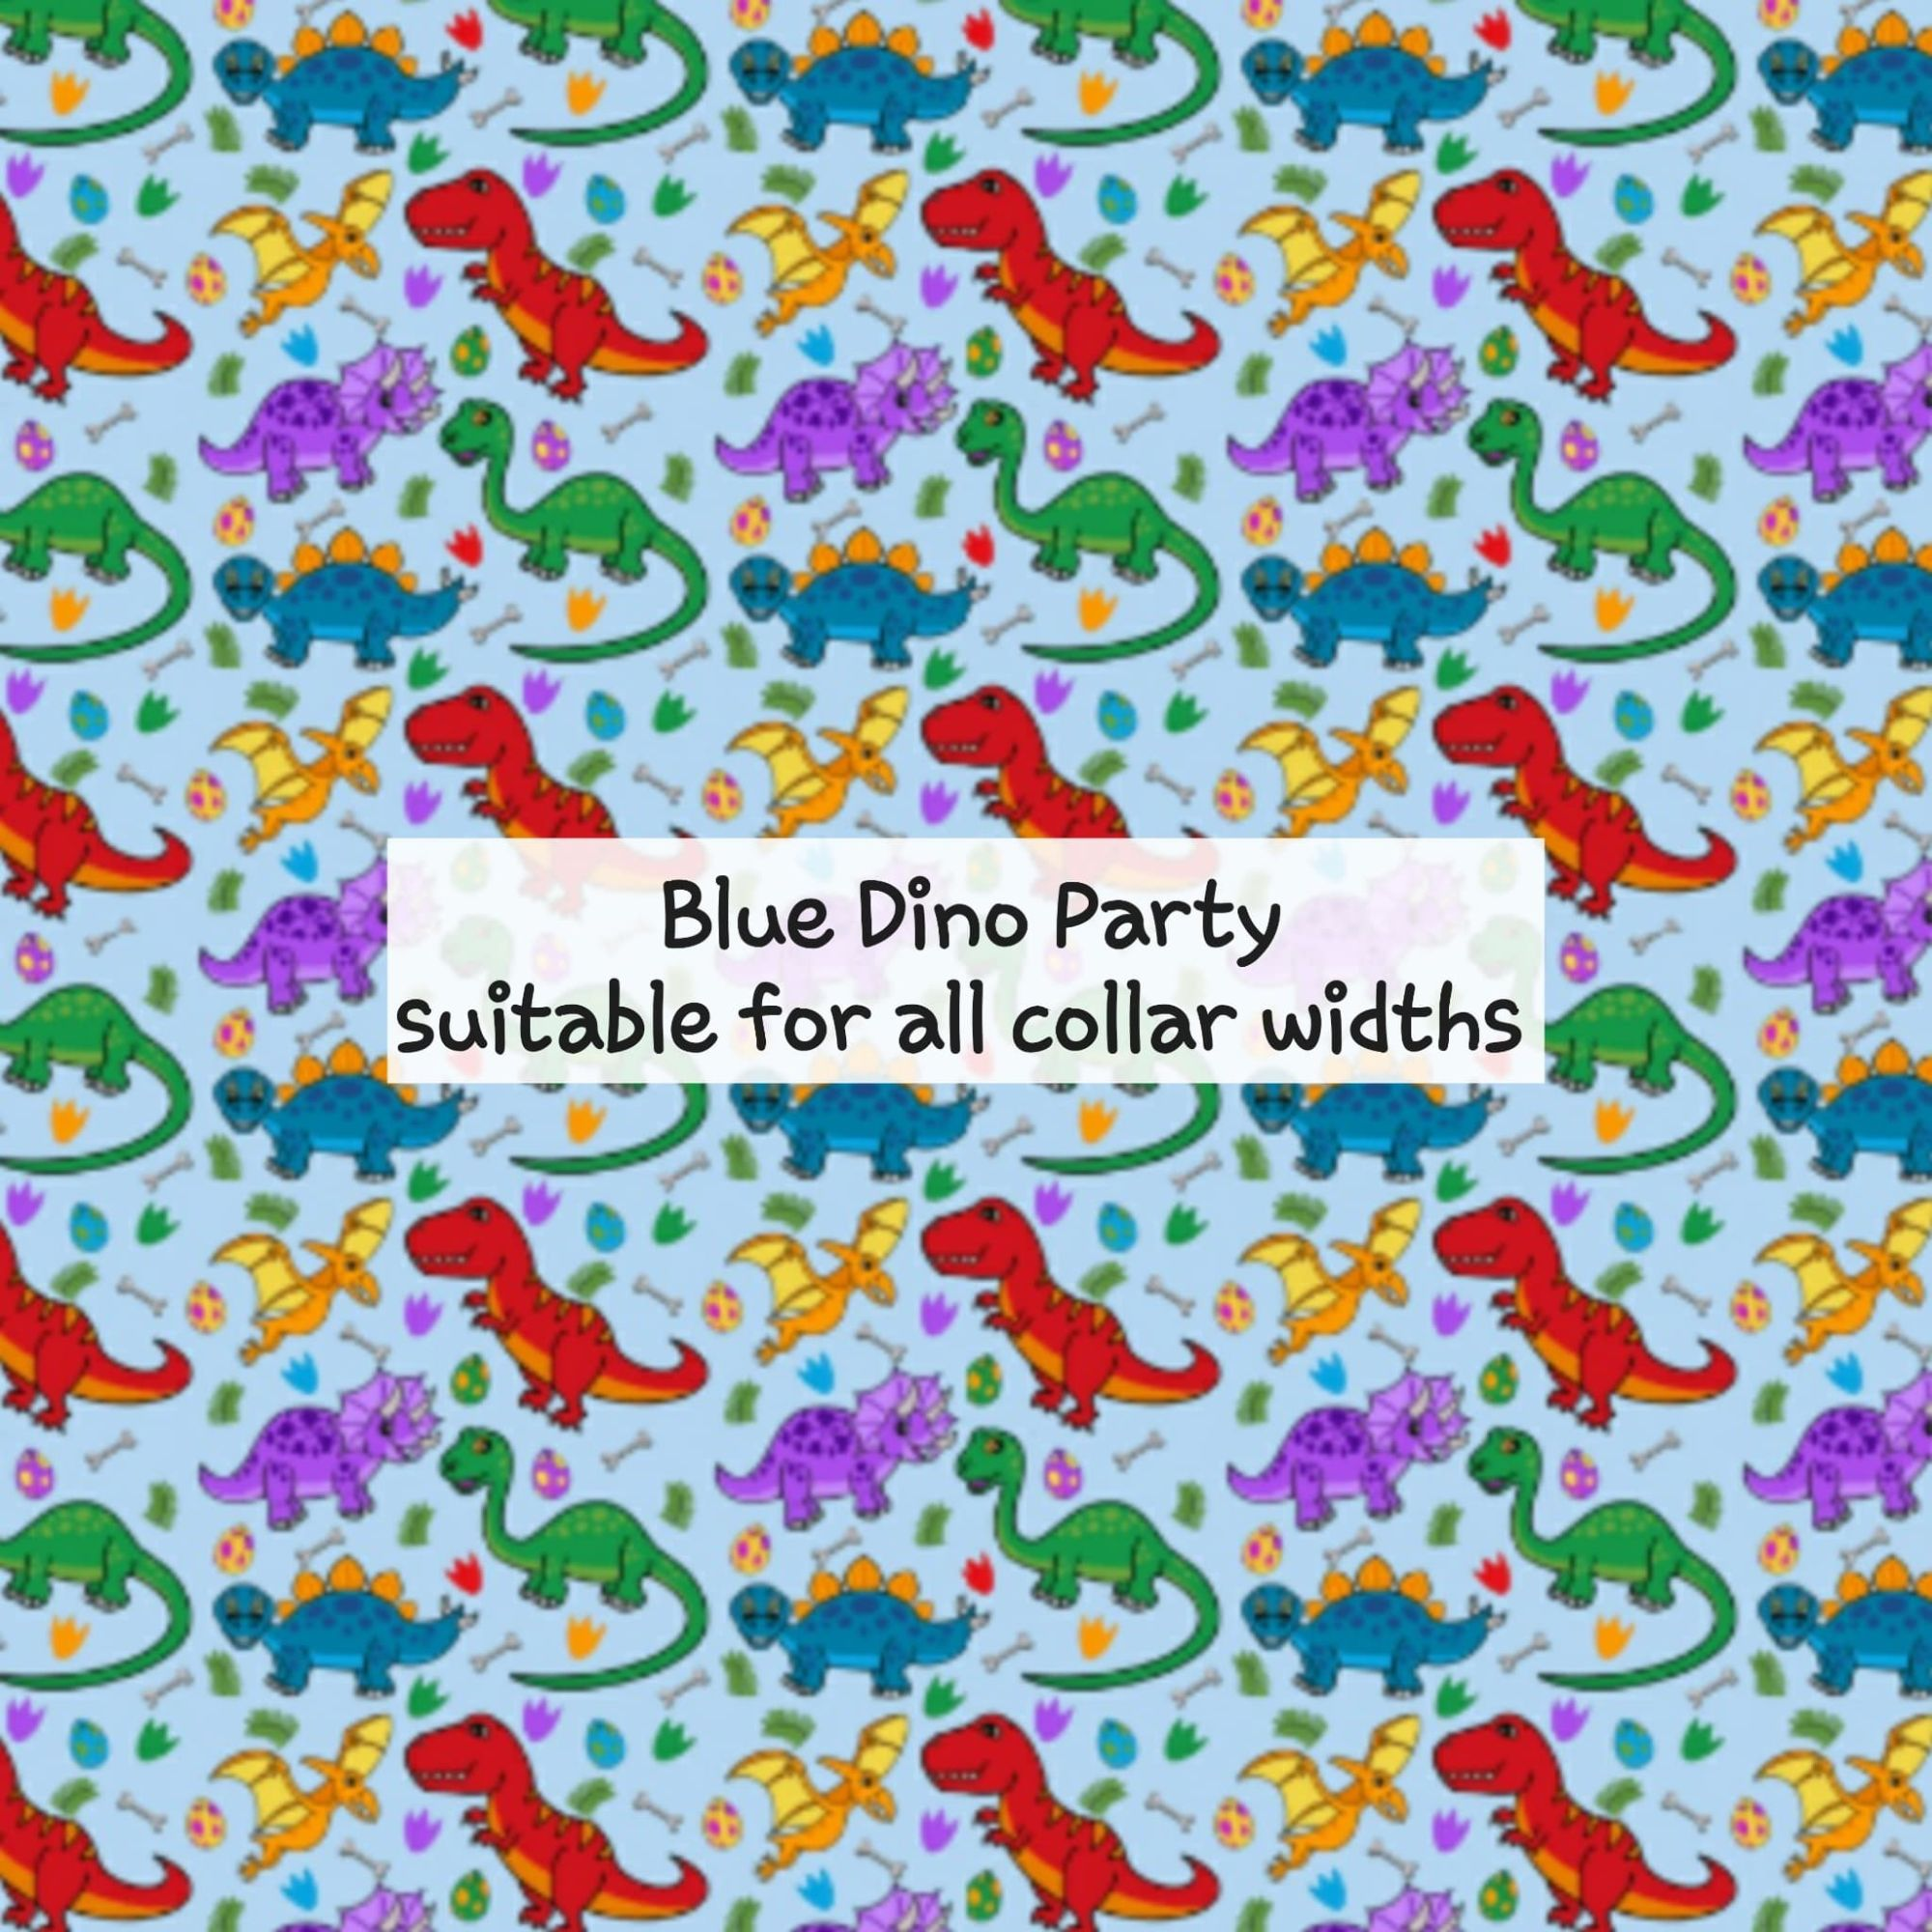 Blue Dino Party